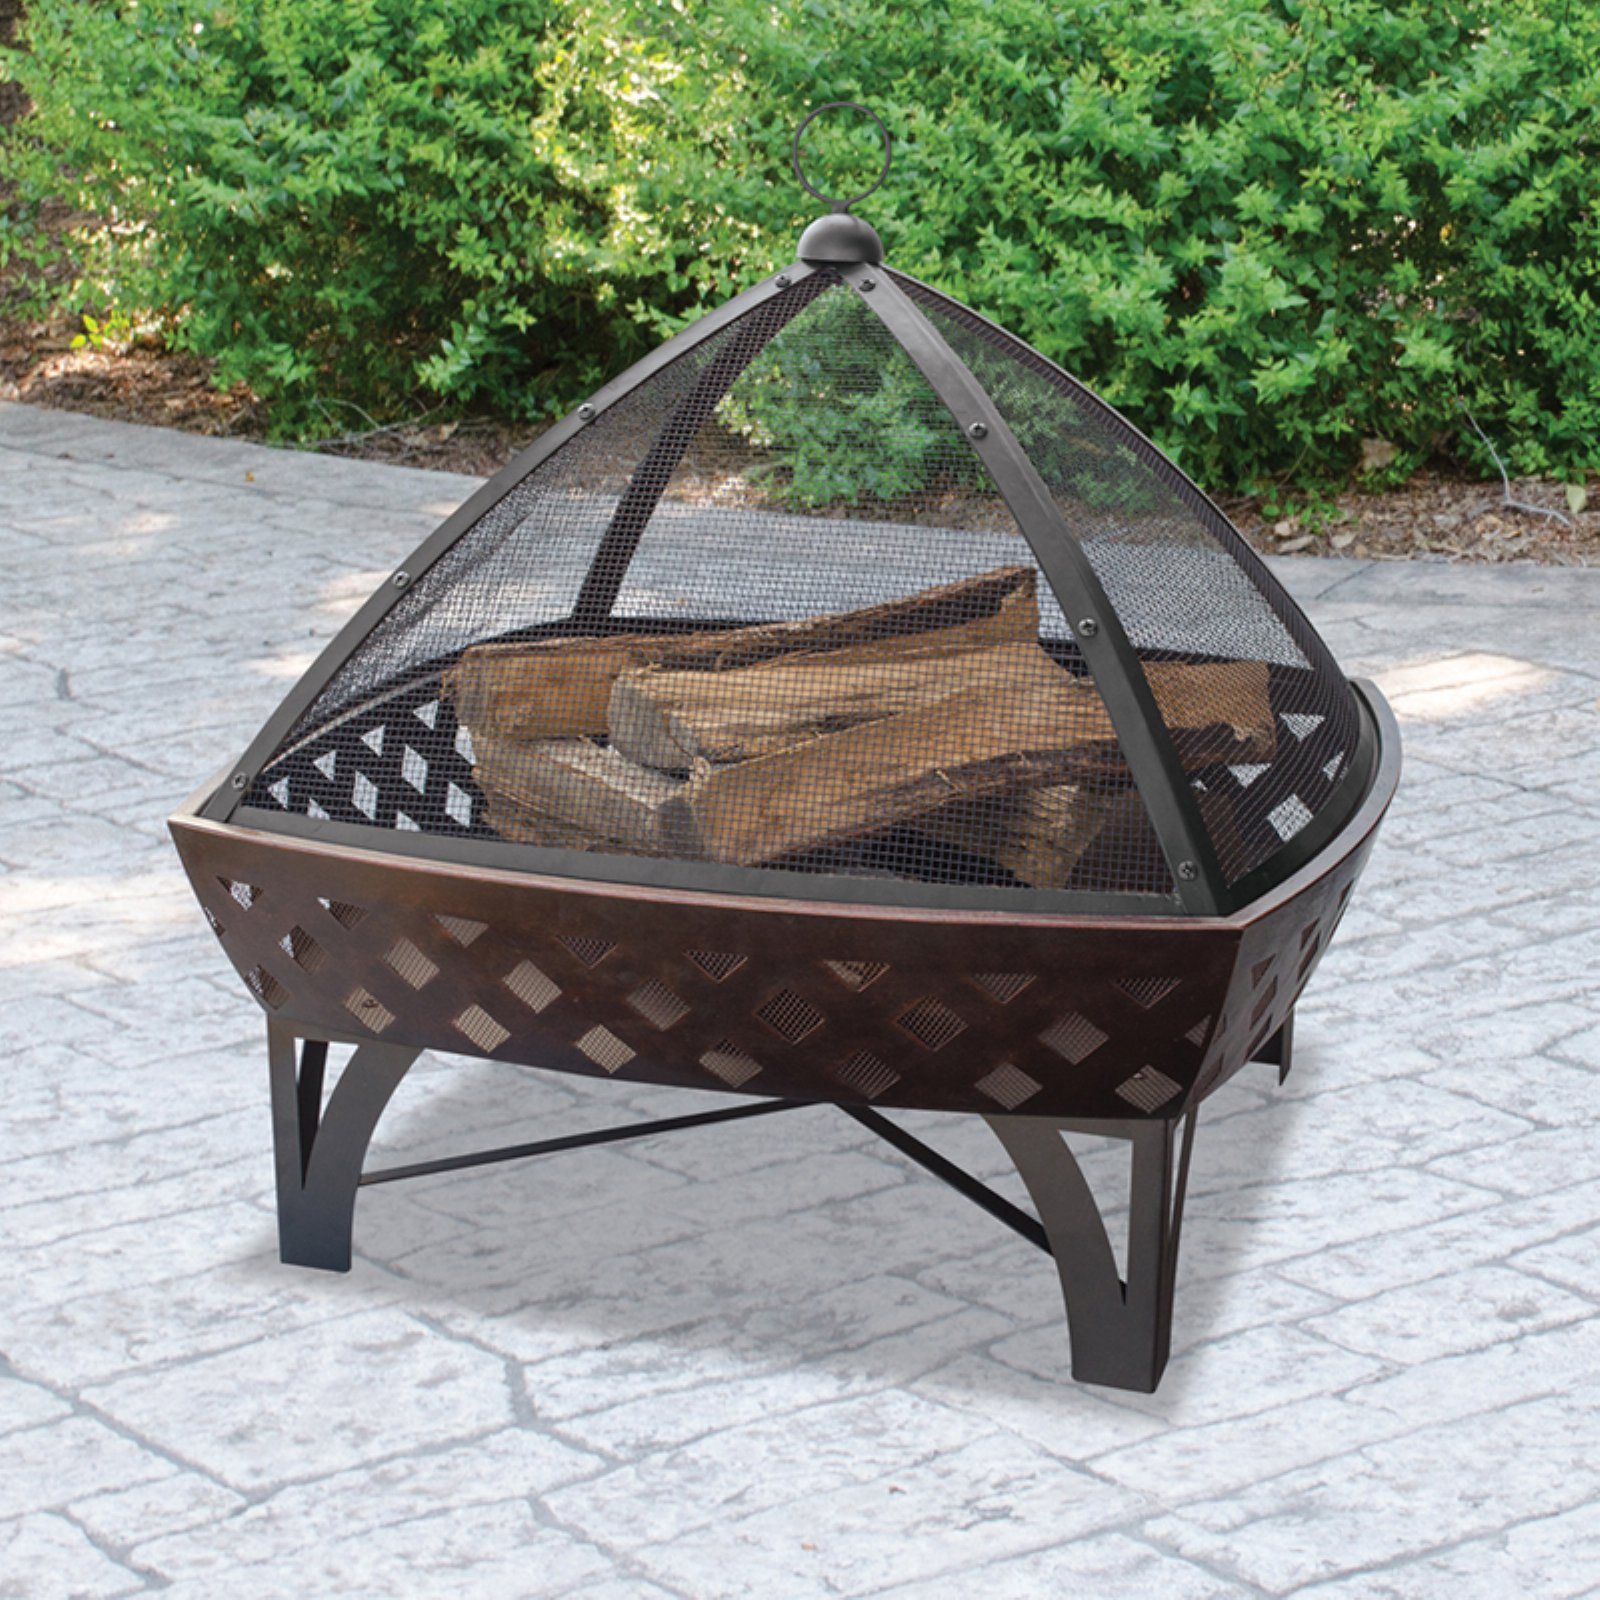 UniFlame Outdoor Firebowl with Lattice Design